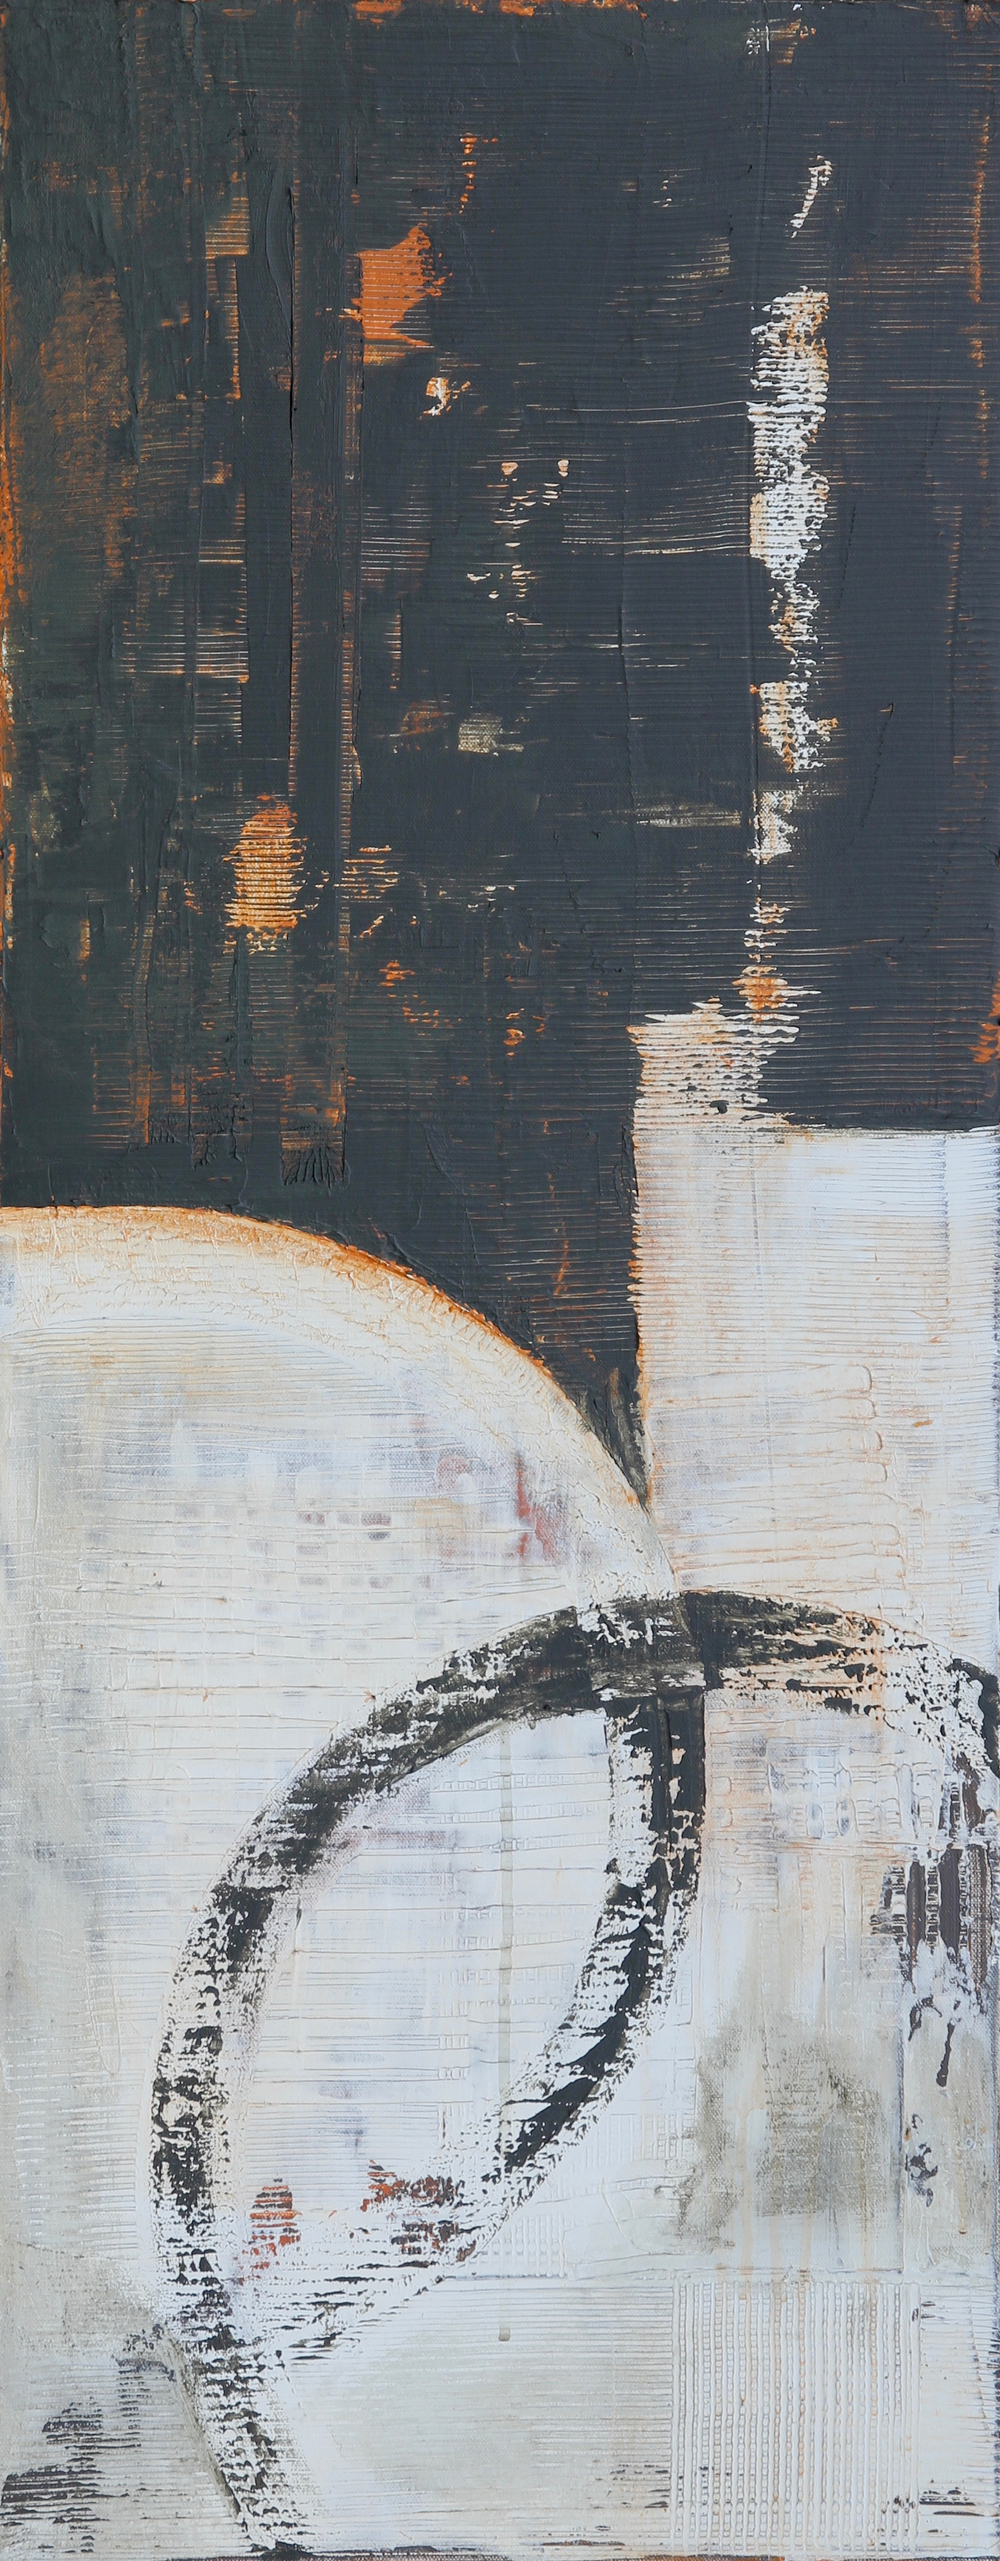 Circulus #3acrylic on canvas40 x 16